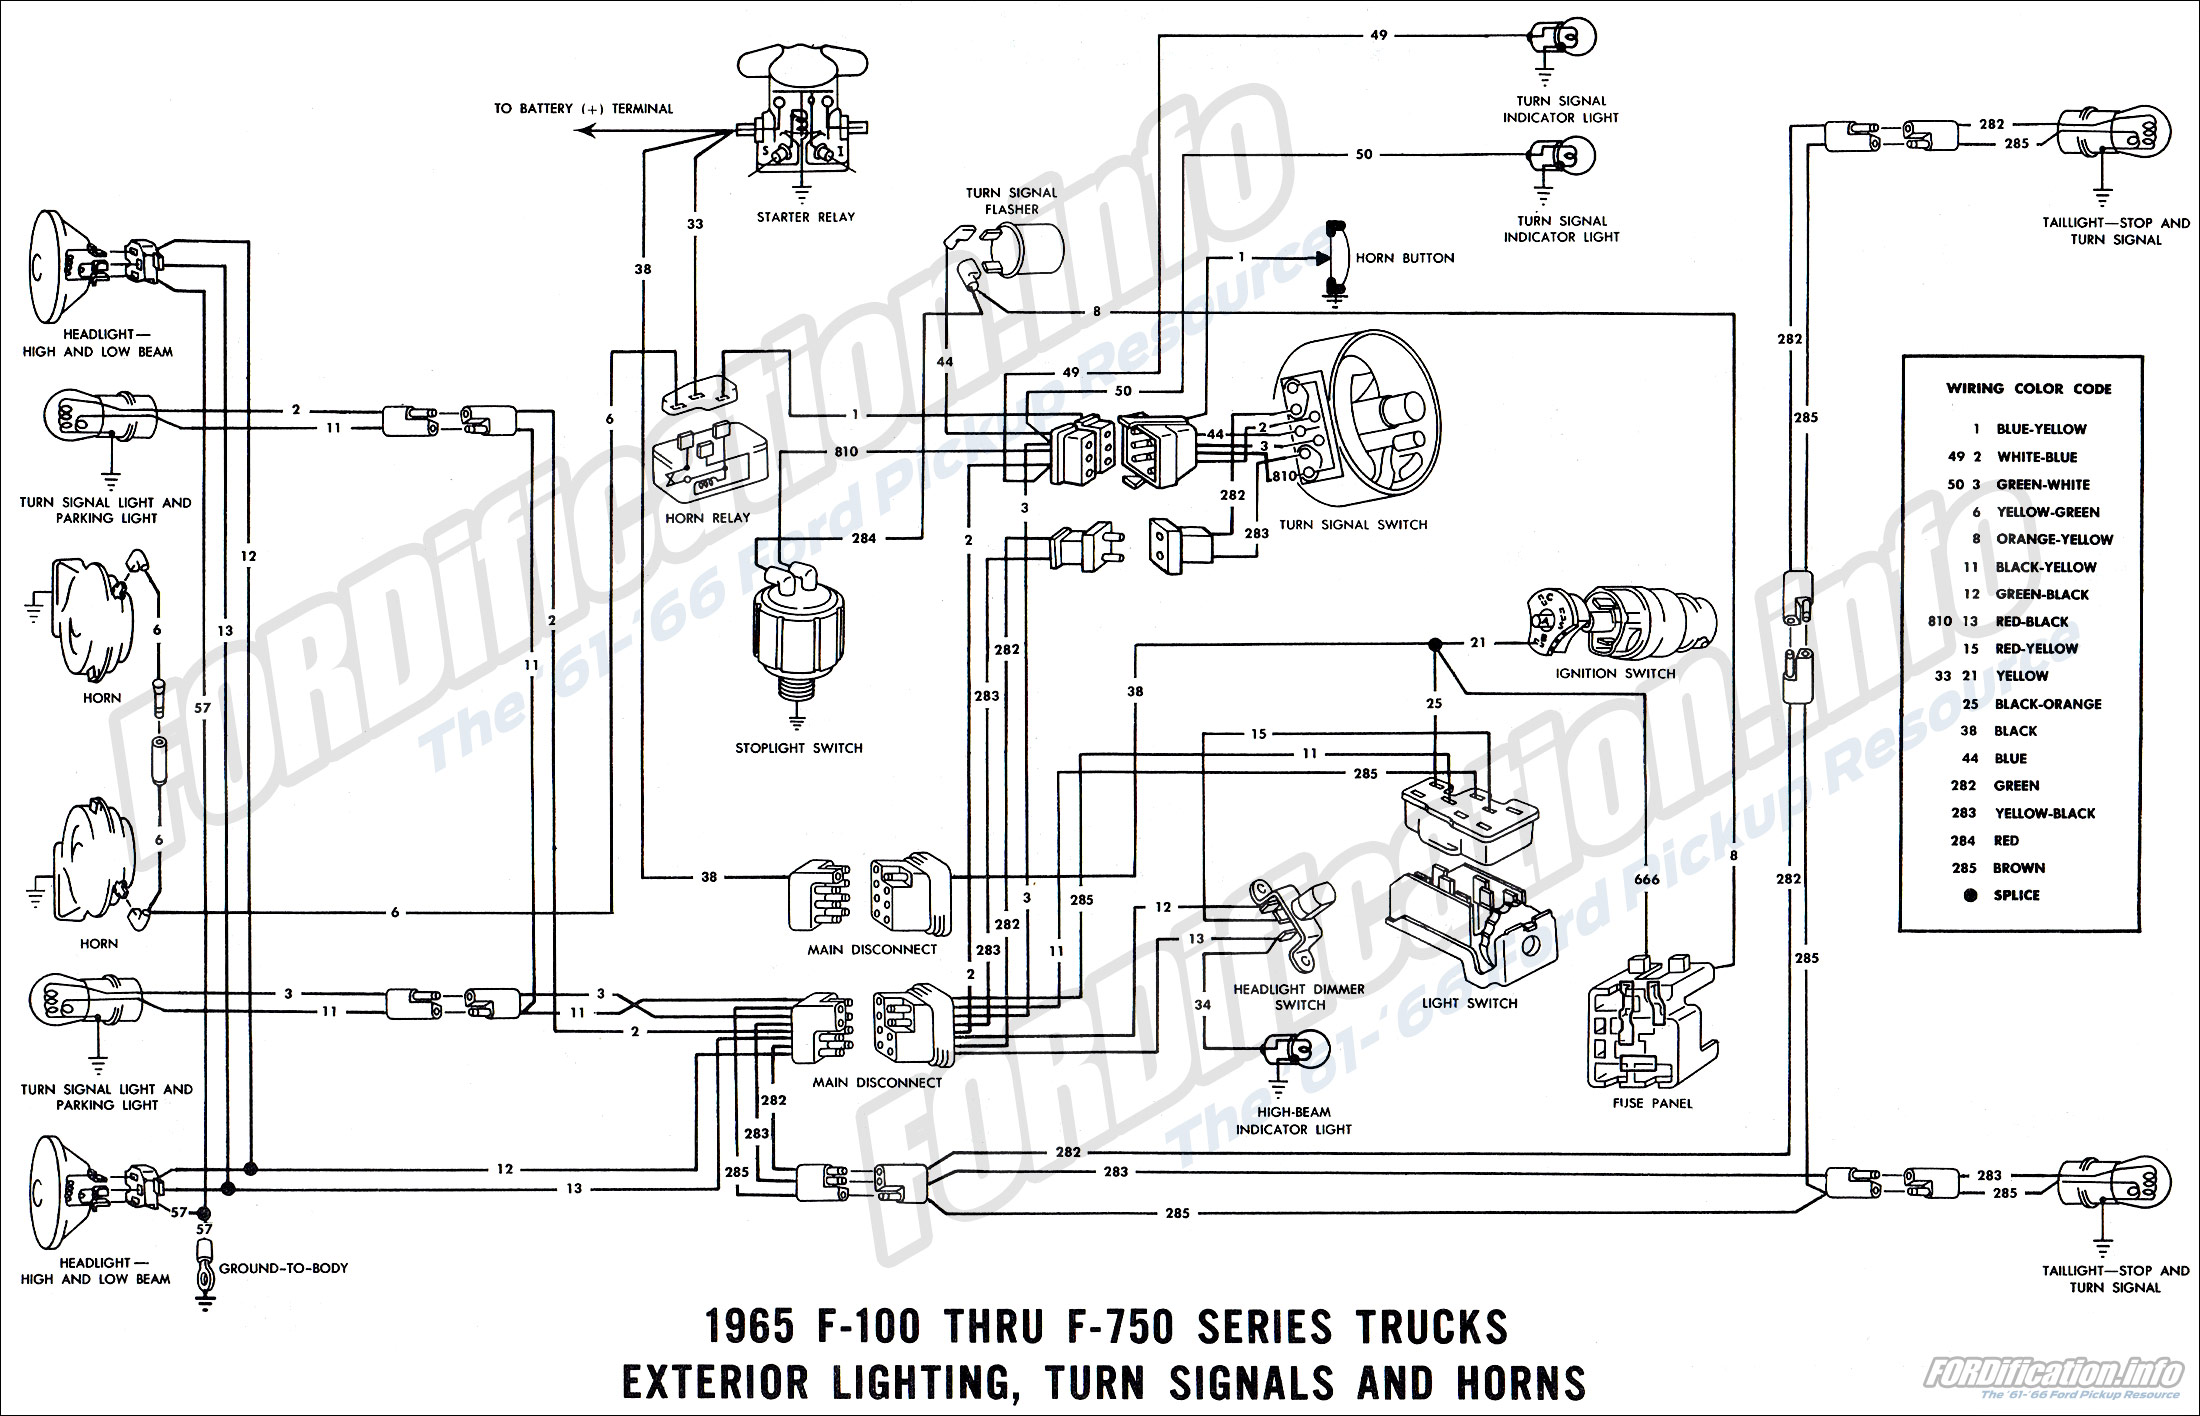 1970 F100 Wiring Diagram - Data Wiring Diagram  F Alternator Wiring Diagram on mustang alternator wiring diagram, 1990 ford alternator wiring diagram, cj7 alternator wiring diagram, taurus alternator wiring diagram,